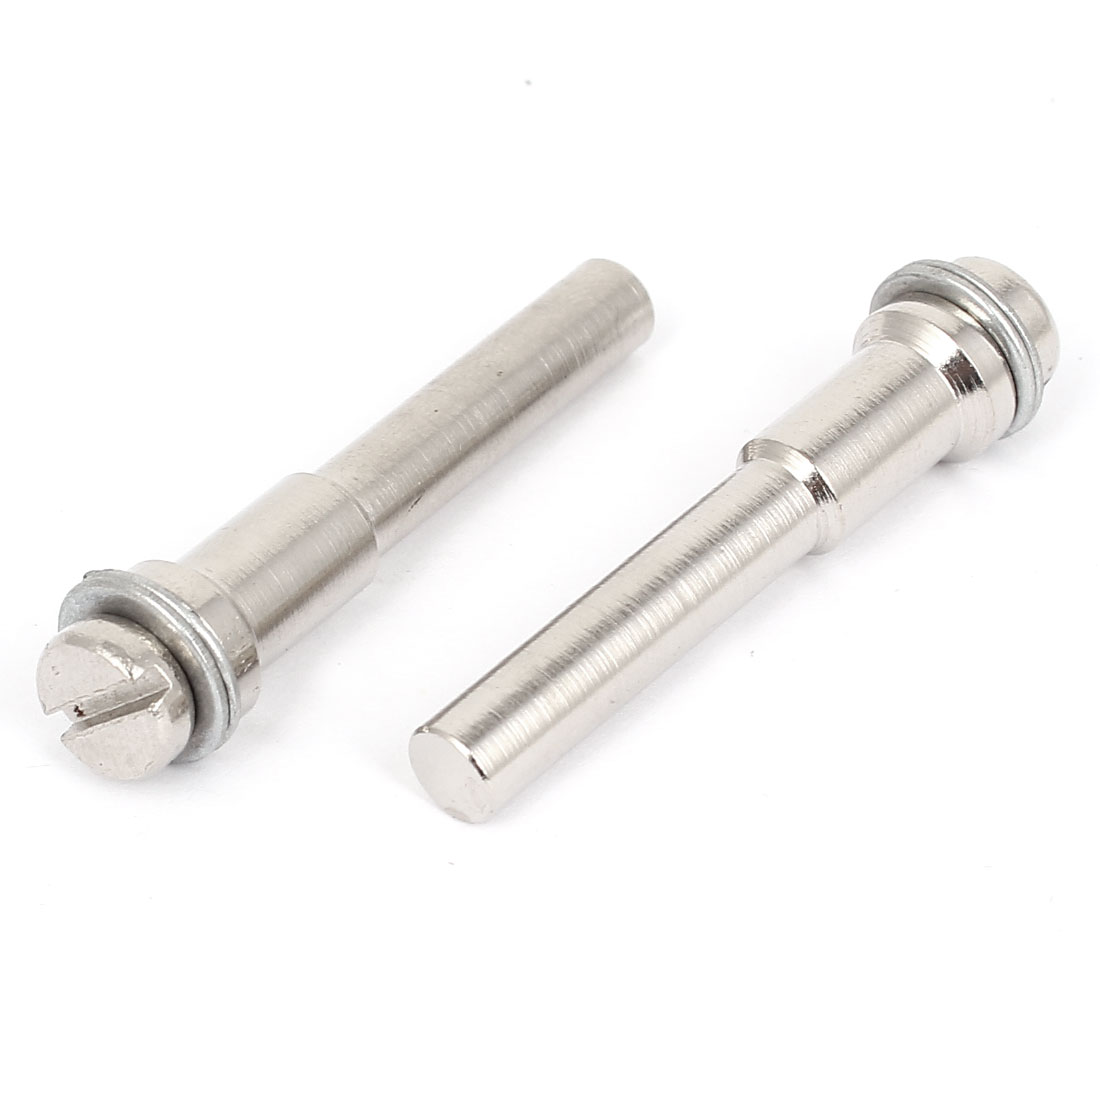 2 Pcs 6.3mm Shank Dia Mandrel for Diamond Rotary Grinding Wheel Disc